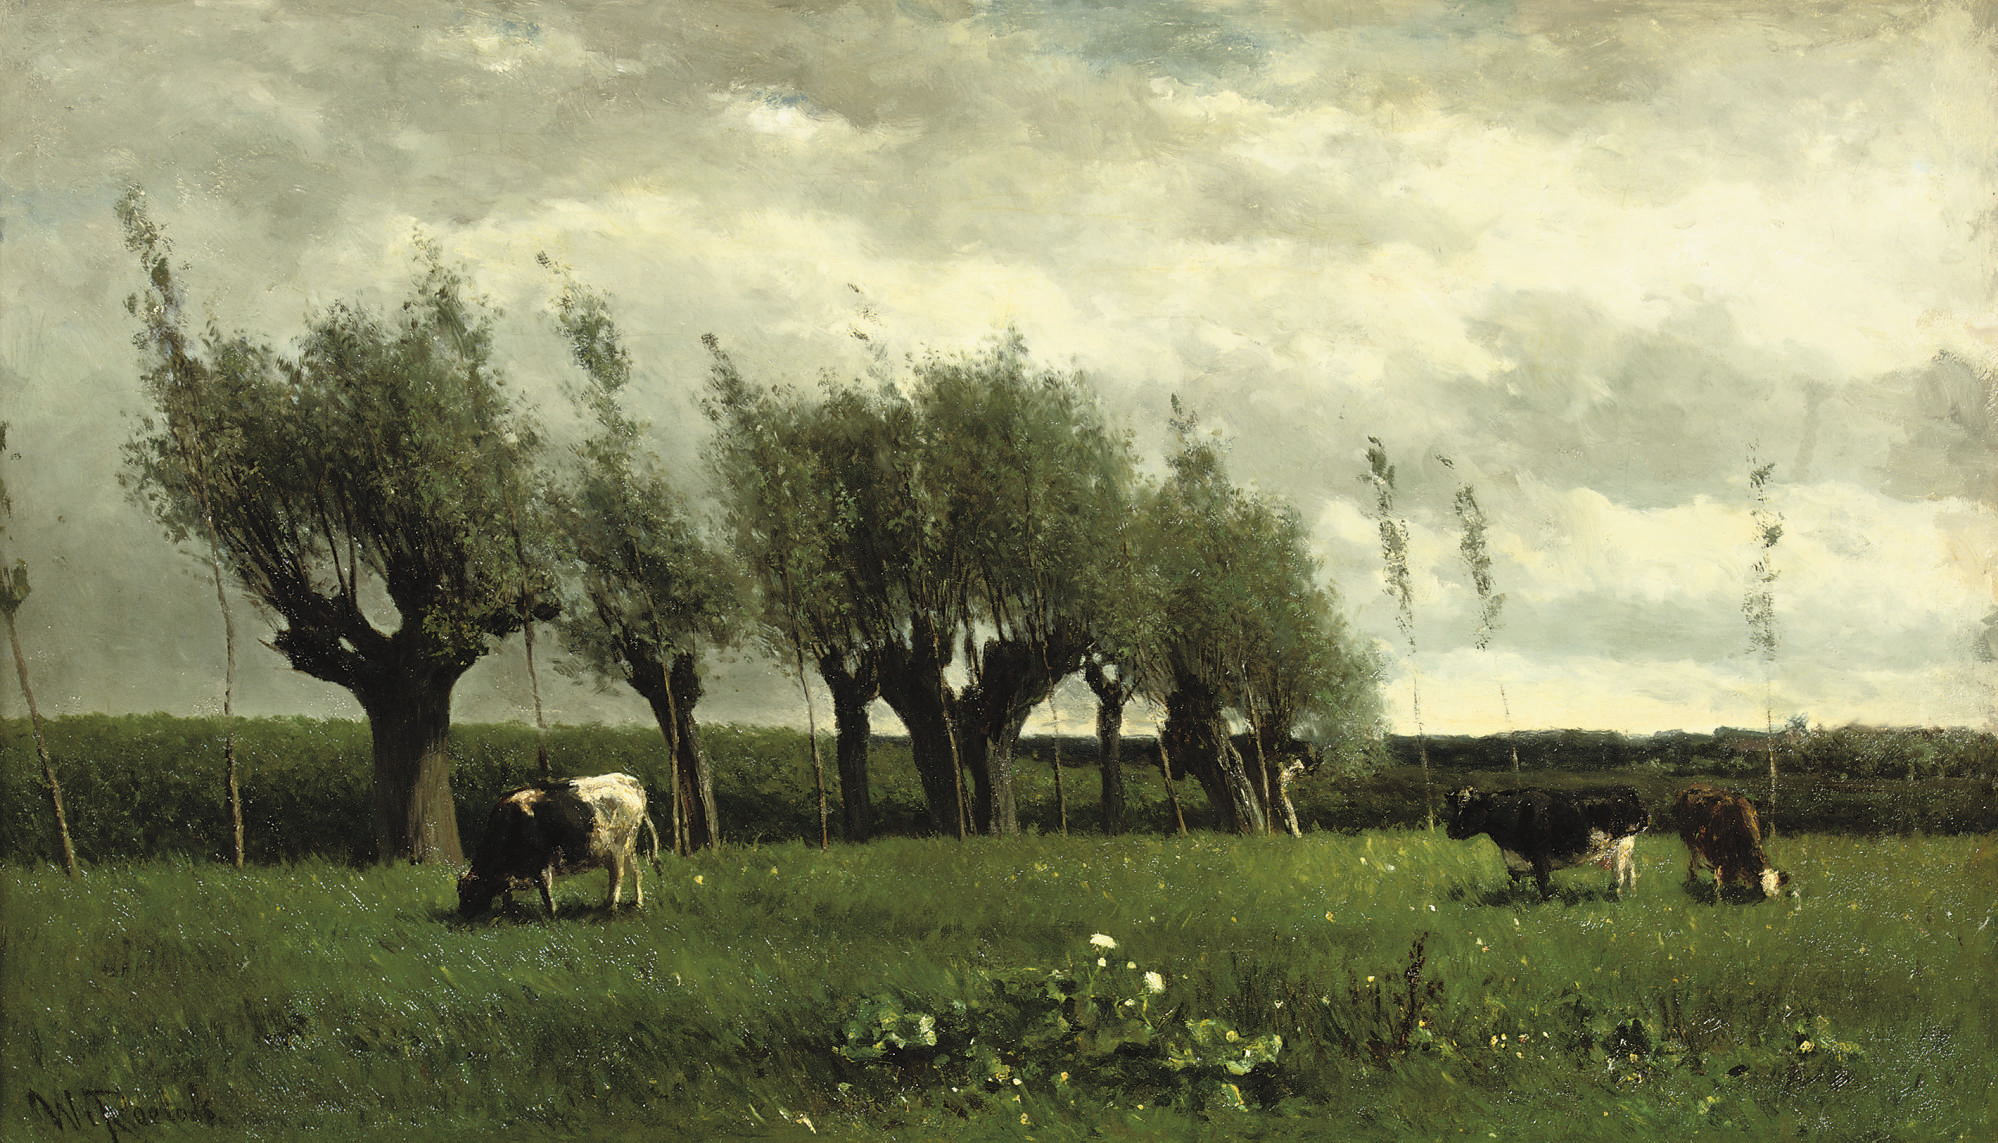 Wilgenrij: cattle grazing near willows